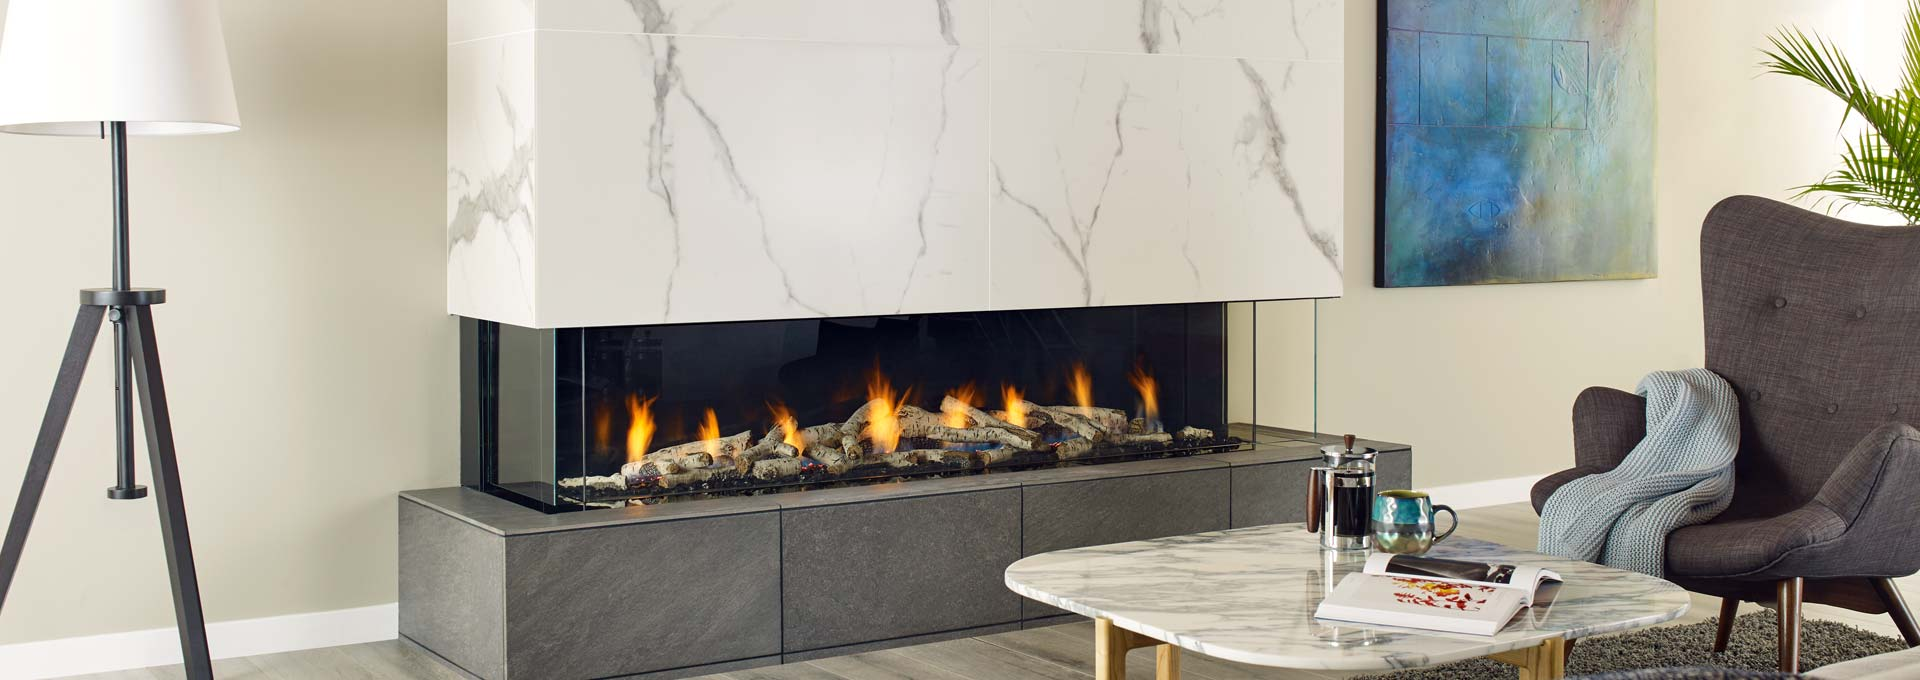 Stupendous San Francisco Bay 72 Modern Gas Fireplace Regency Download Free Architecture Designs Rallybritishbridgeorg